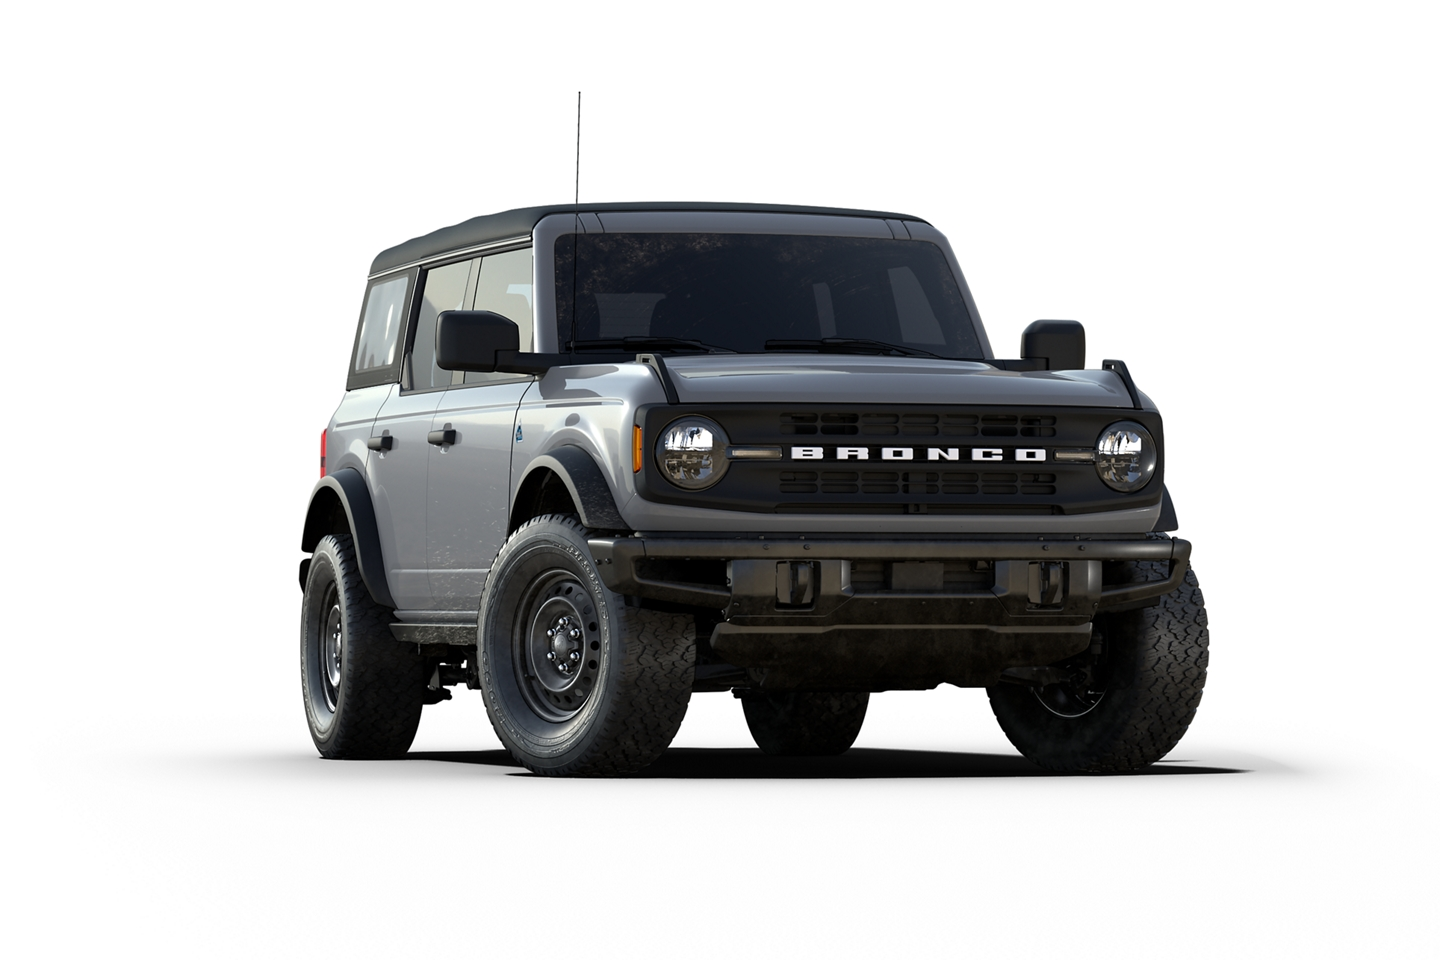 2021 Ford Bronco Black Diamond Series